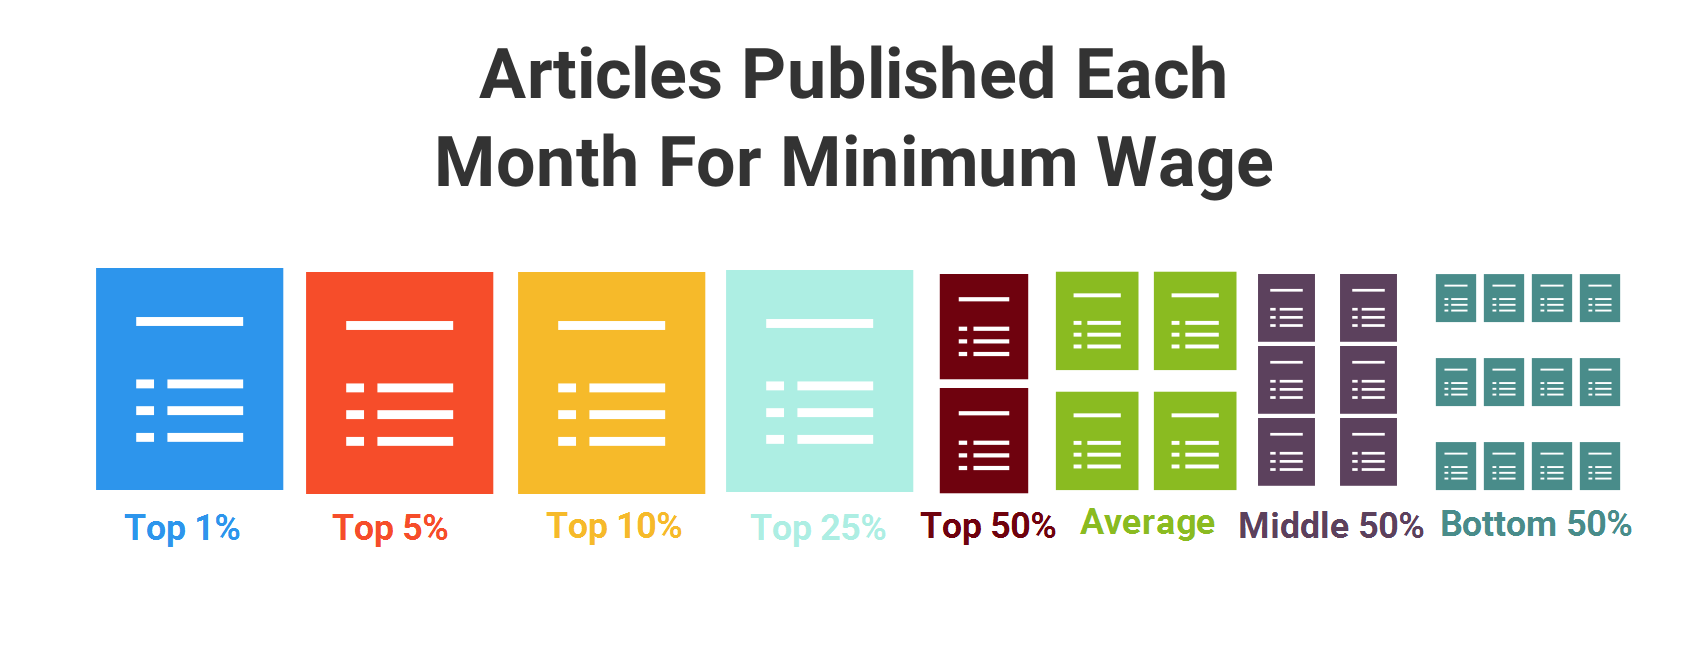 Articles published just to meet minimum wage for freelancers.